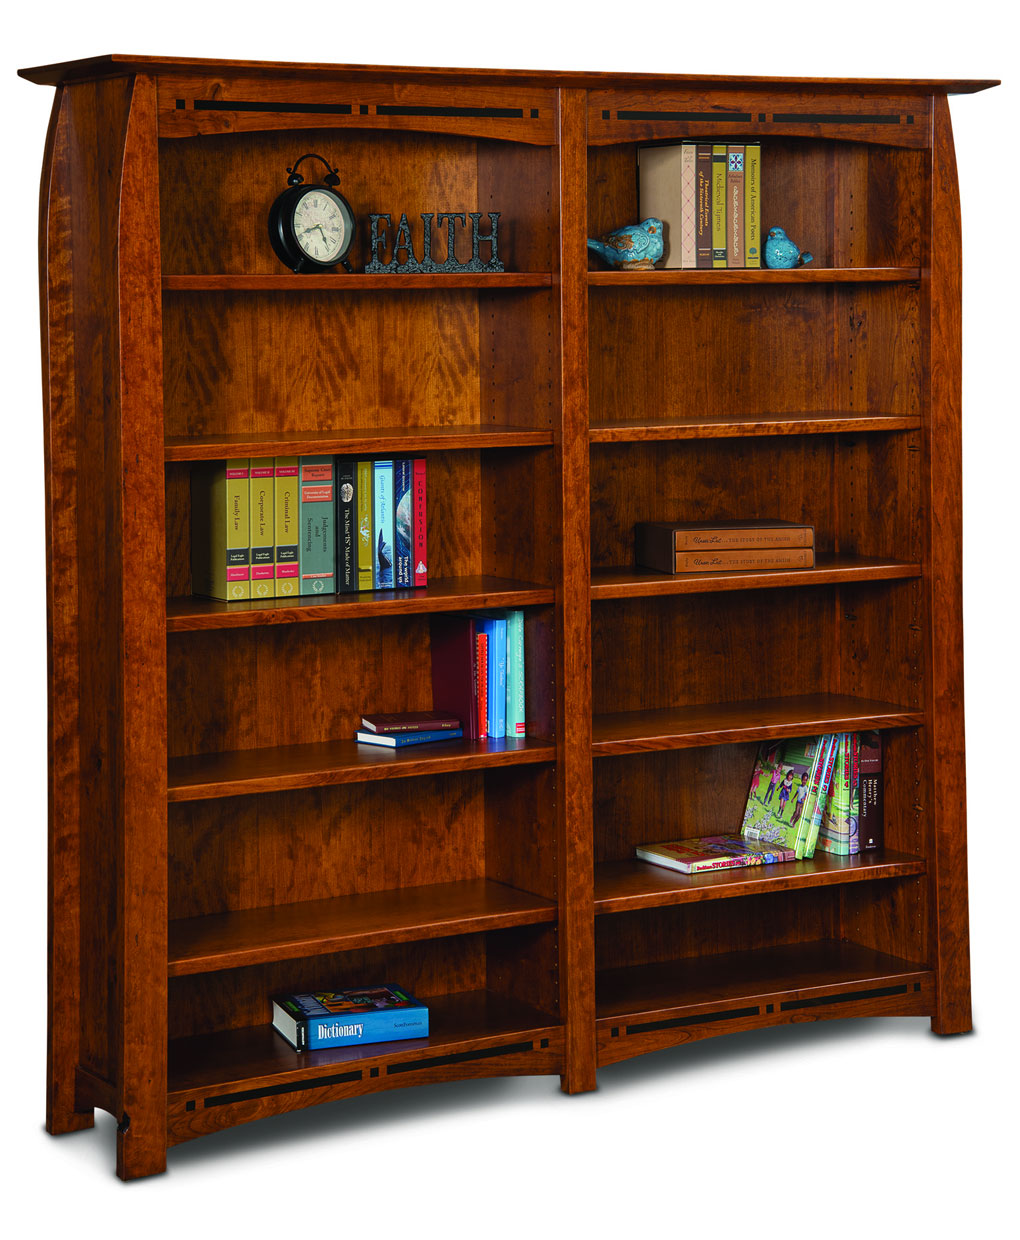 Amish Direct Furniture: Boulder Creek Double Bookcase